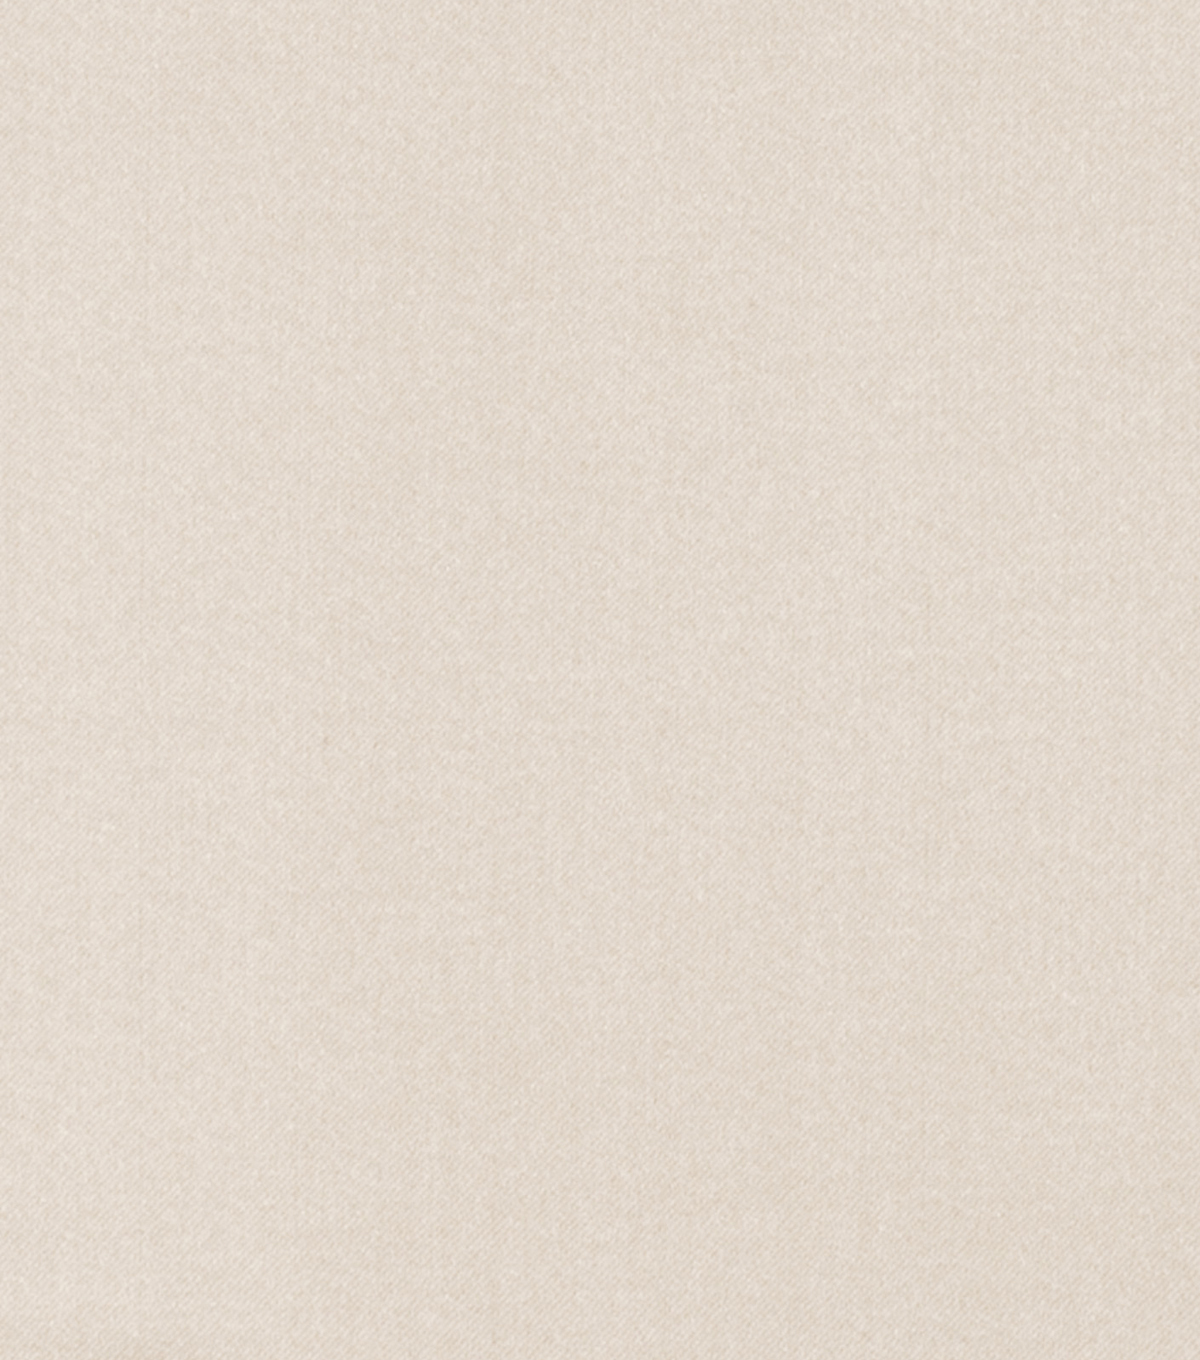 Home Decor 8\u0022x8\u0022 Fabric Swatch-Signature Series Couture Satin Plaza